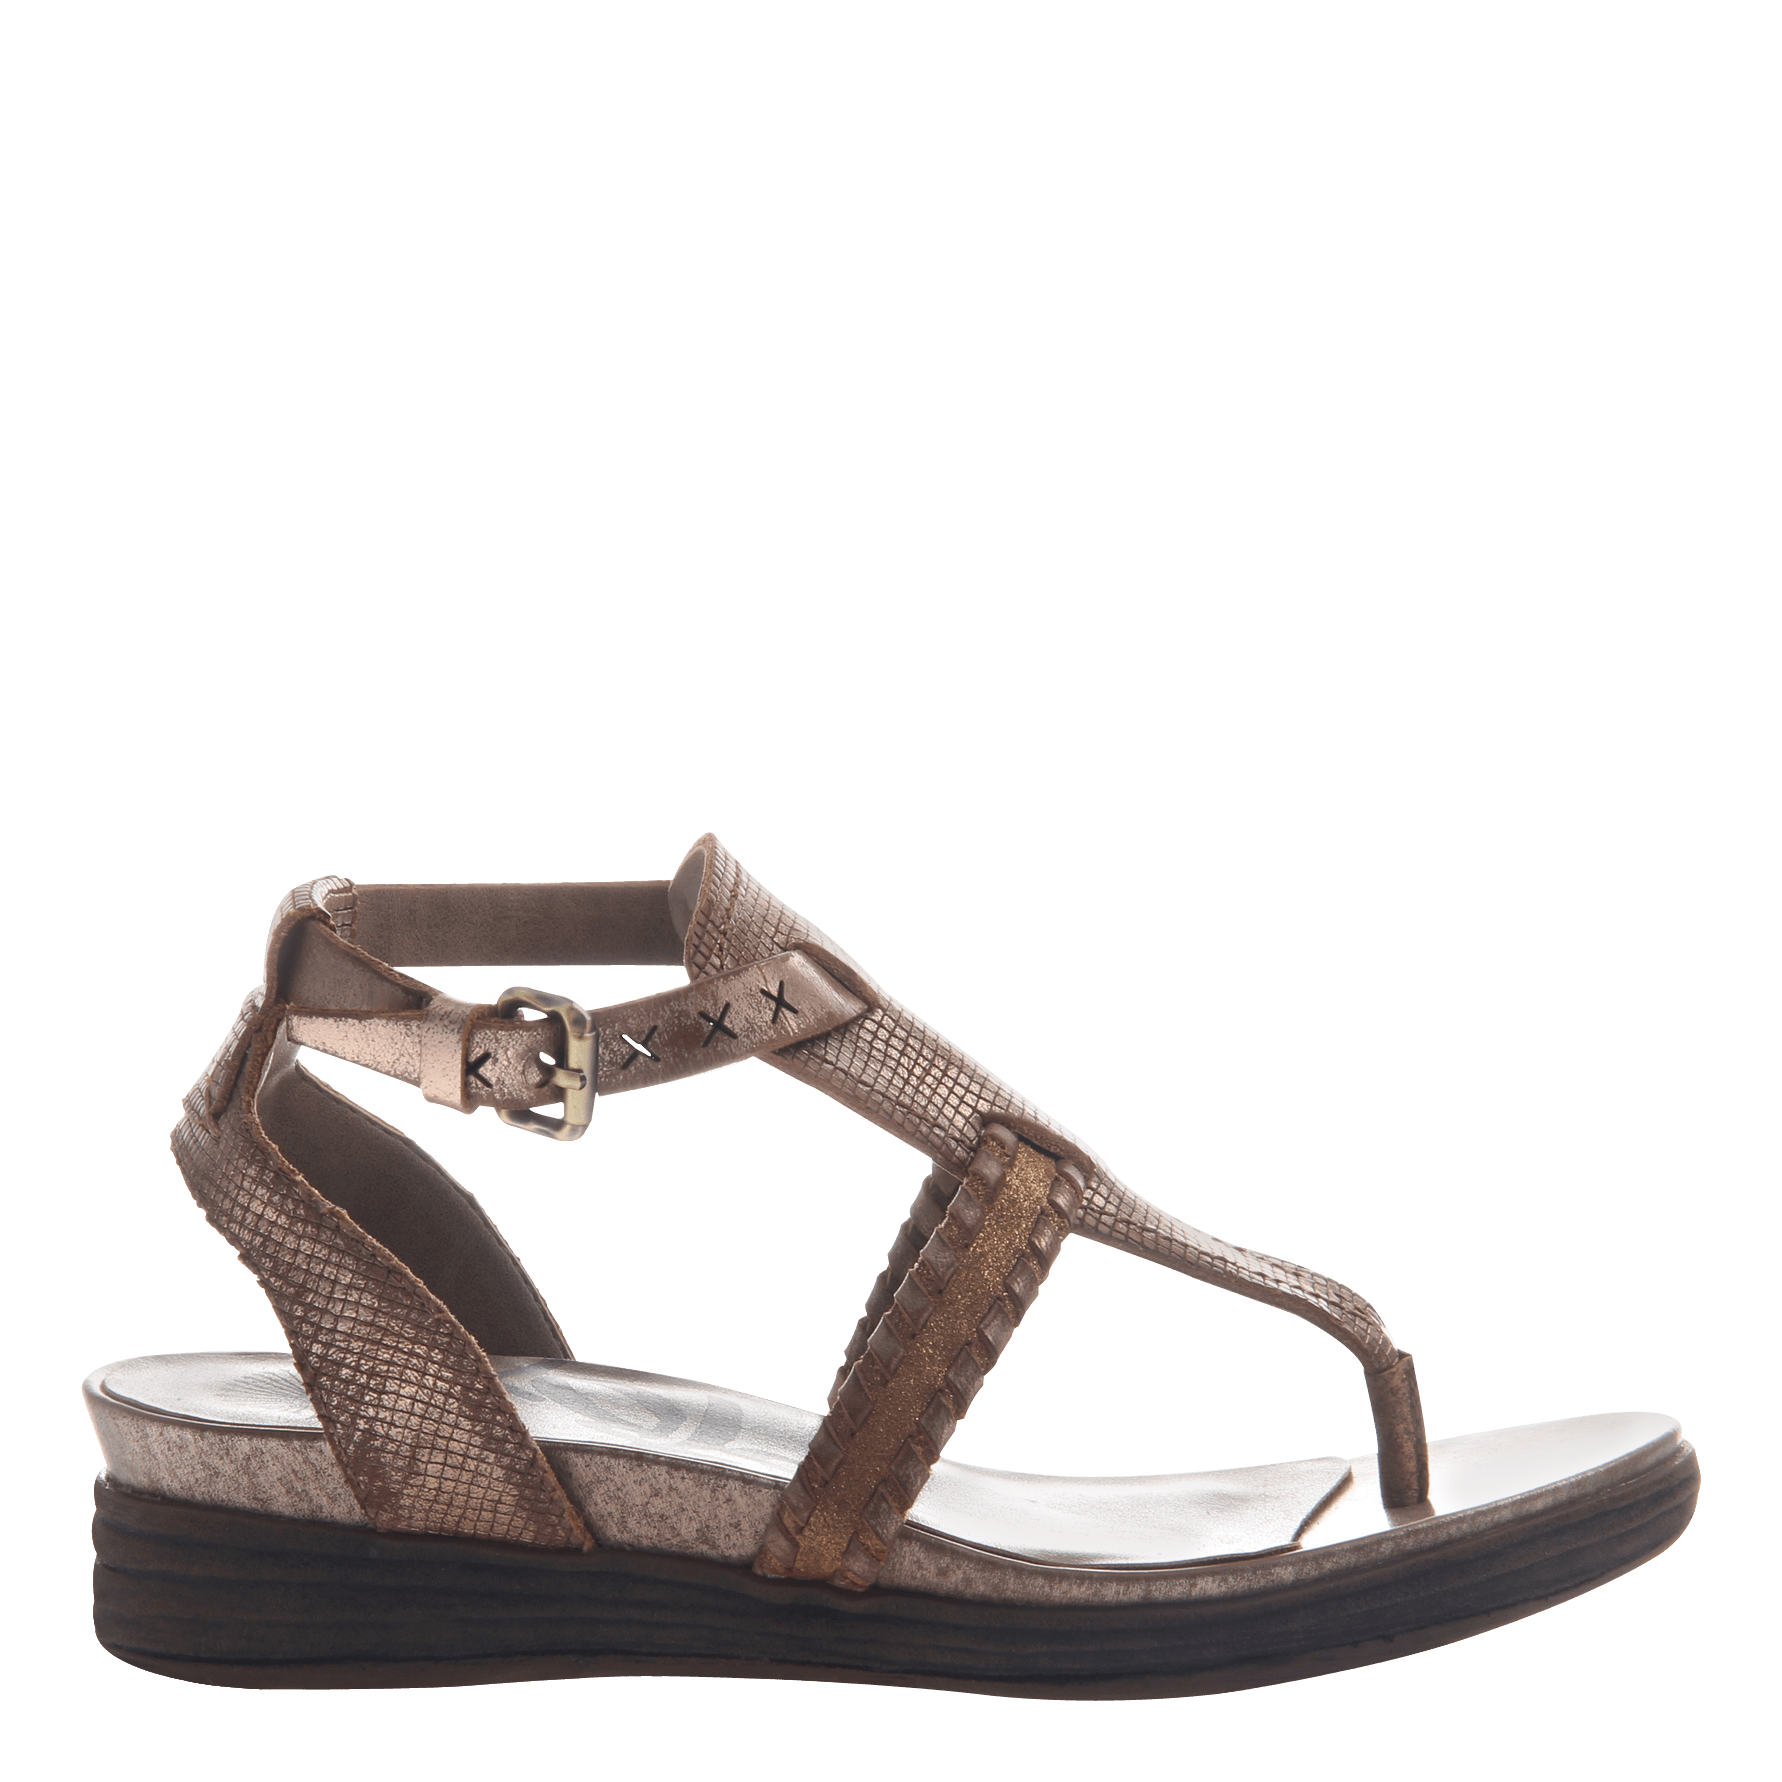 Celestial In Copper Flat Sandals Women S Shoes By Otbt